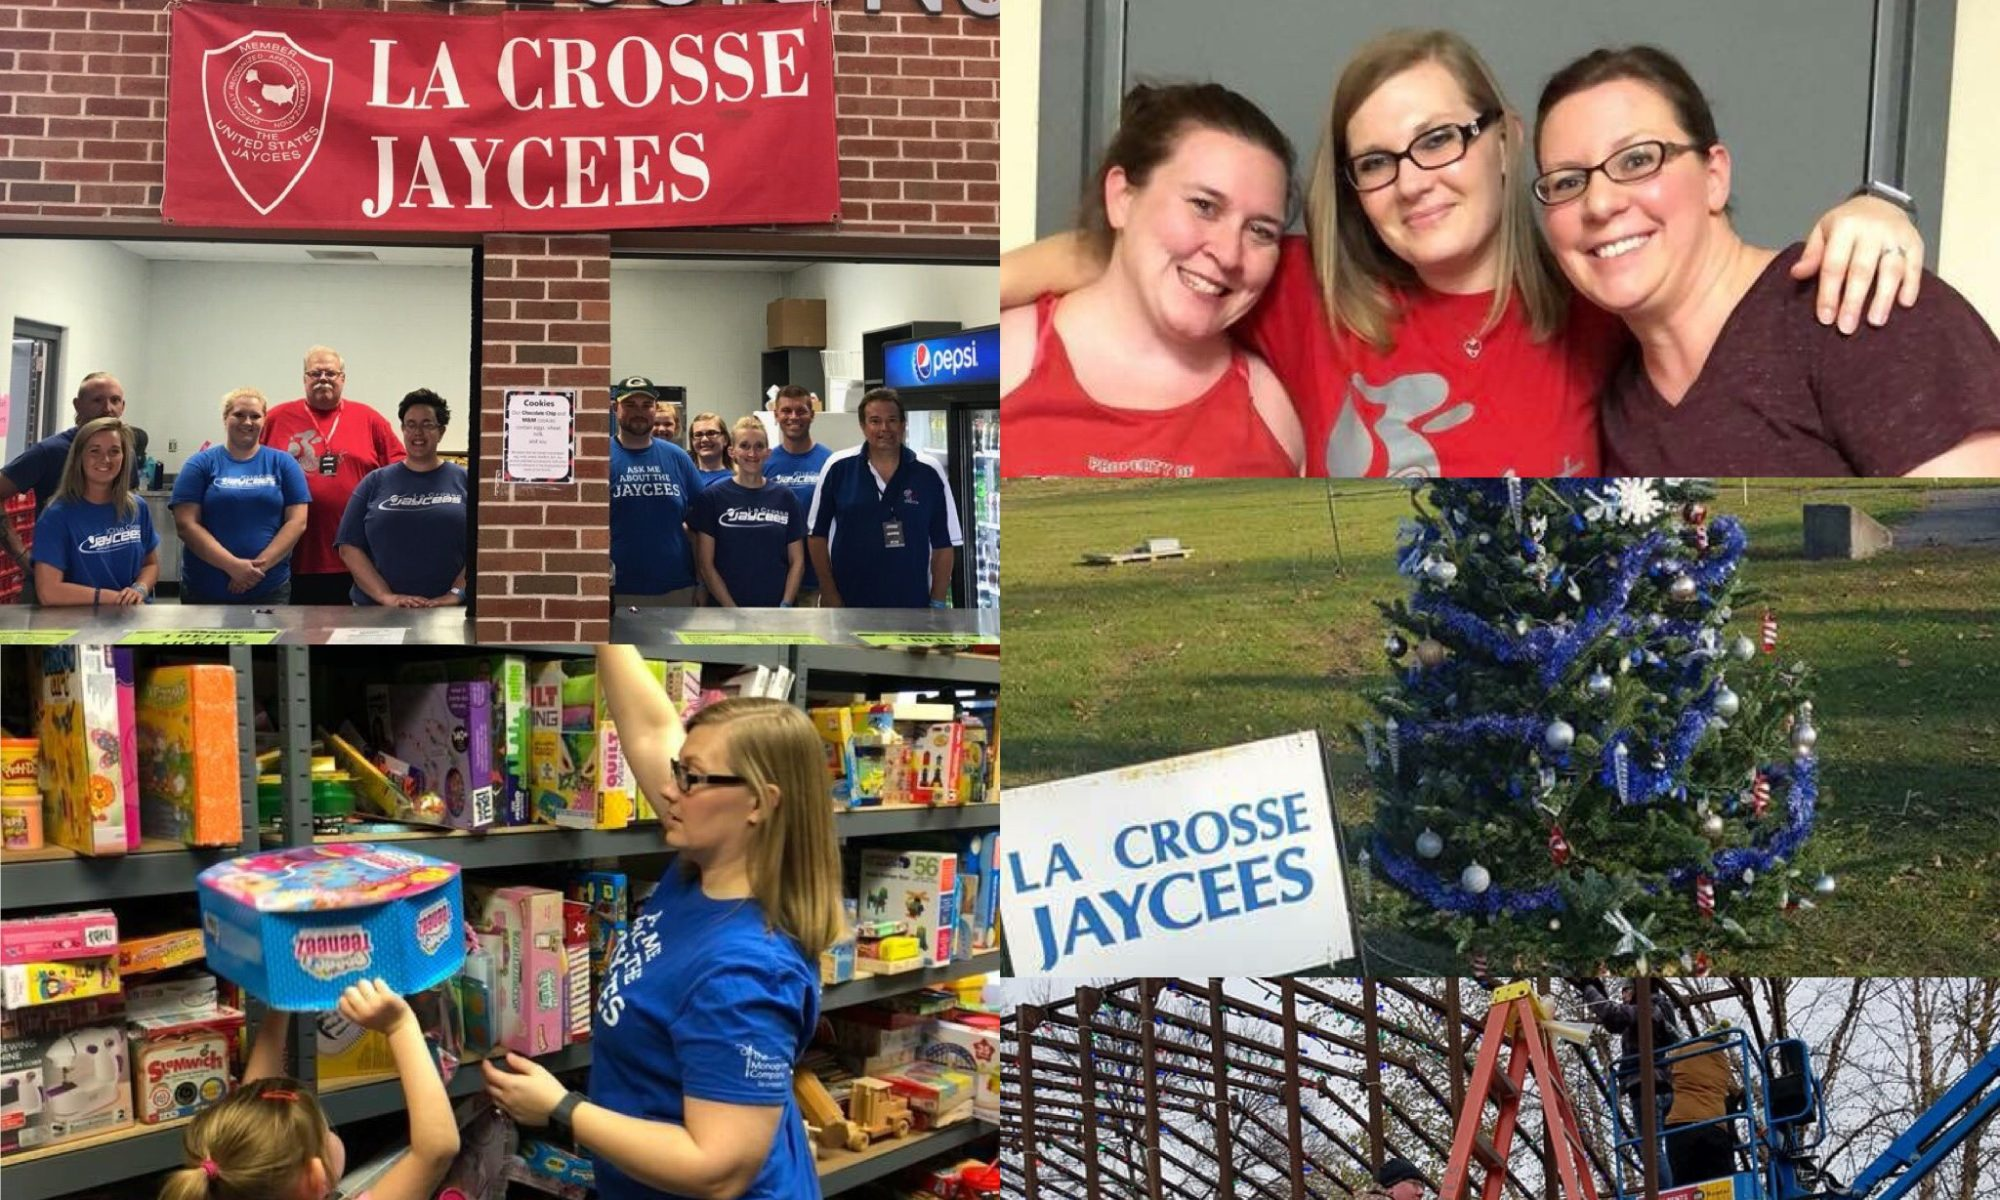 La Crosse Jaycees